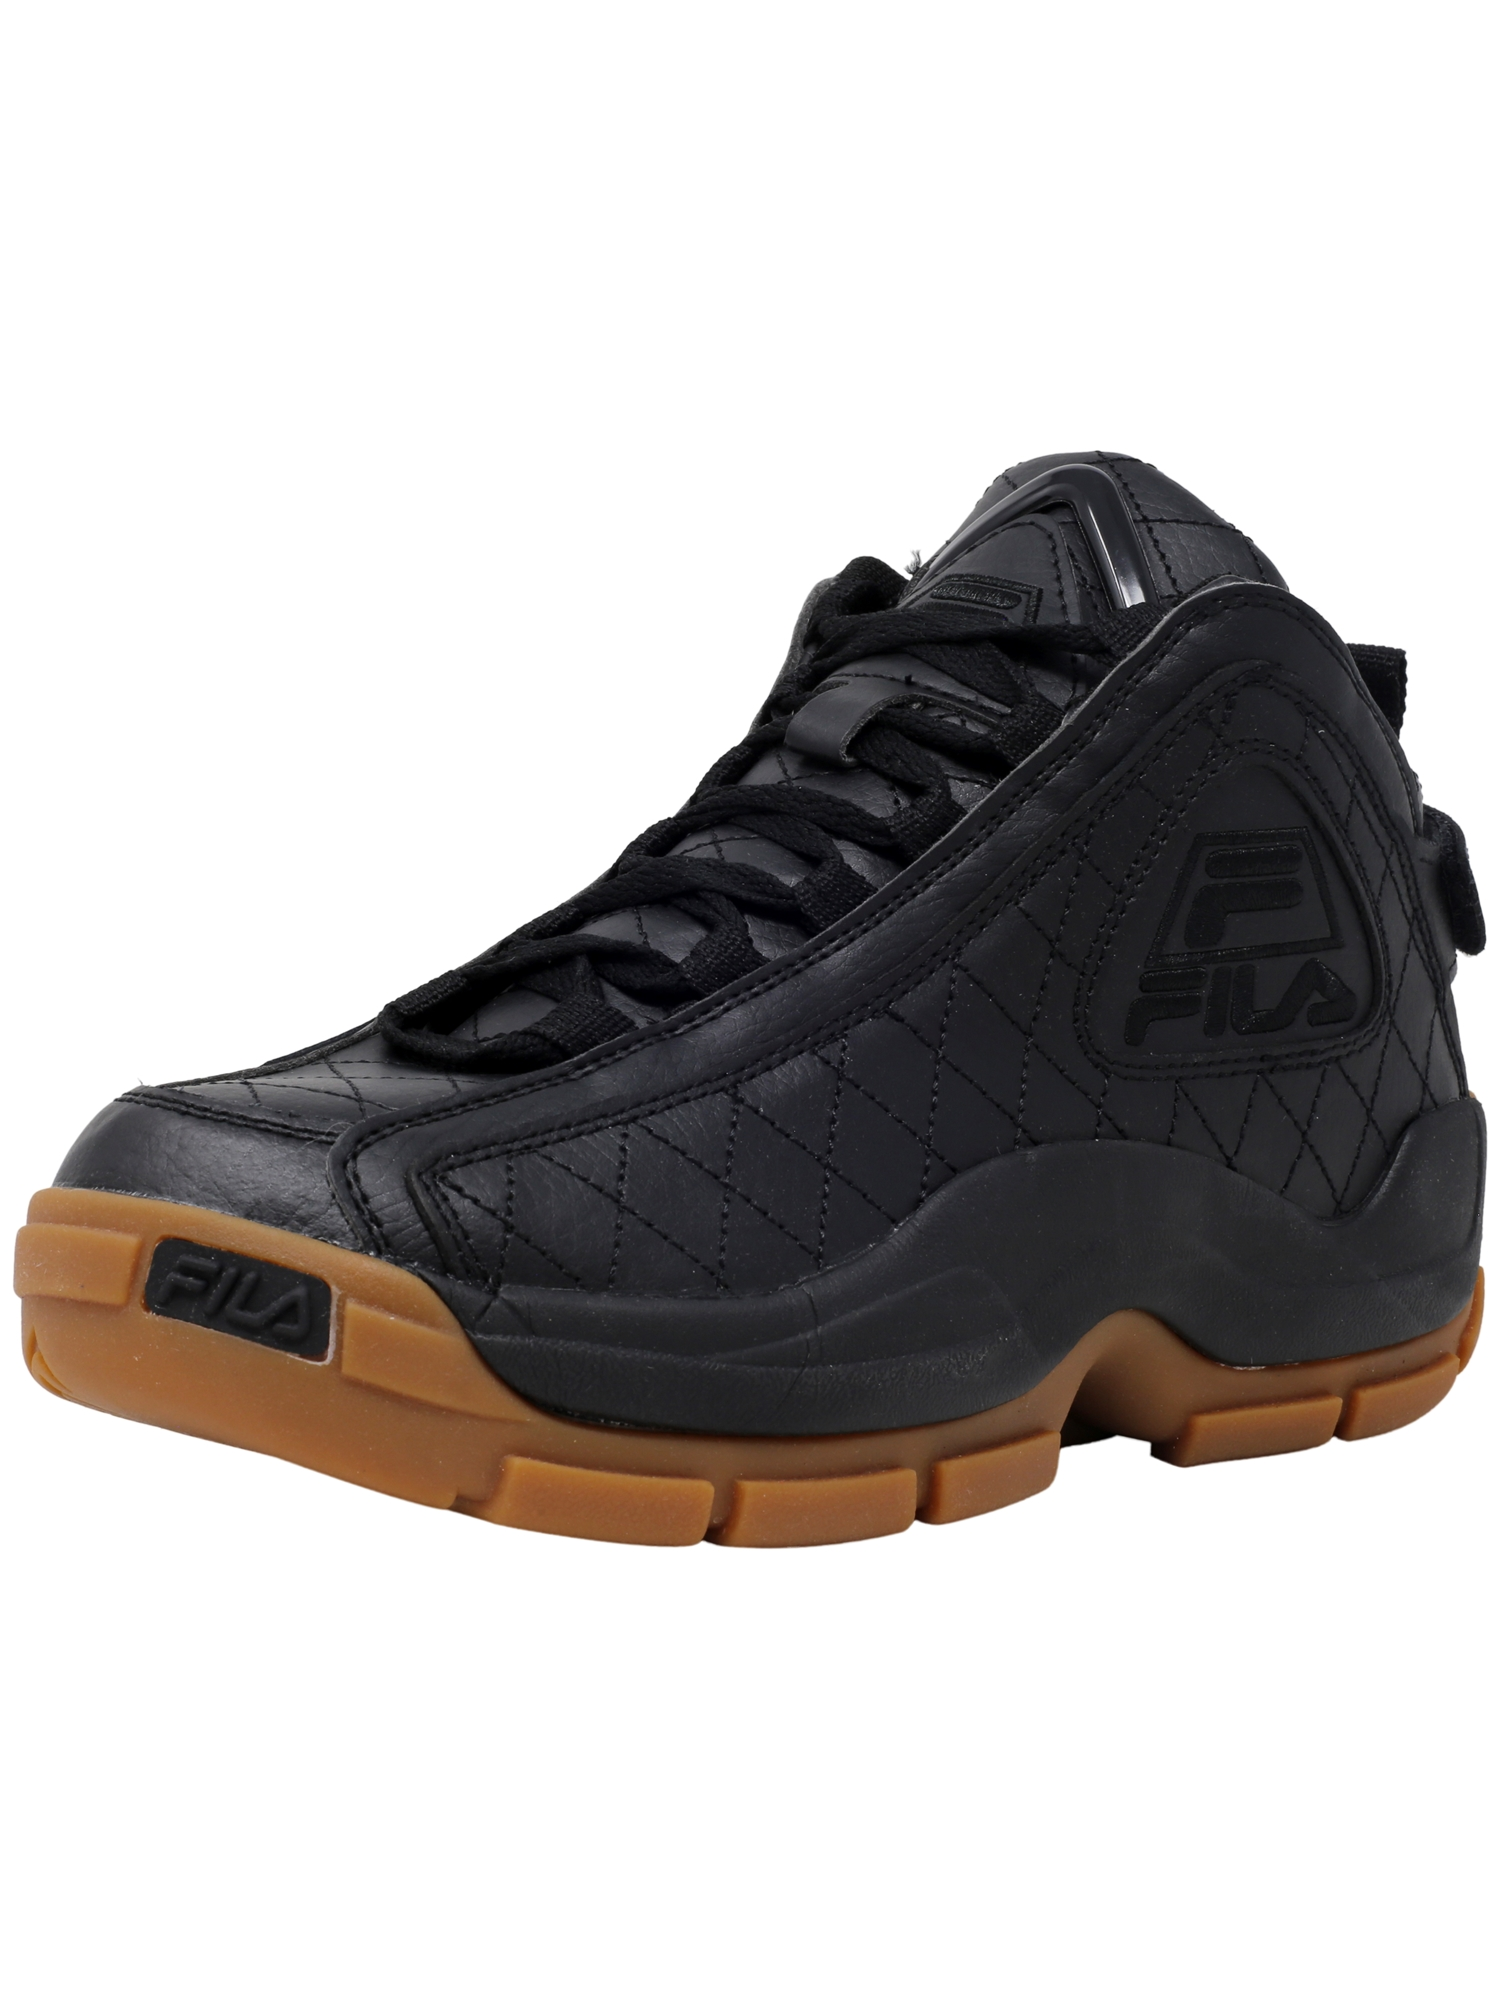 Fila Men's 96 Quilted Black   White Gum High-Top Basketball Shoe 8M by Fila